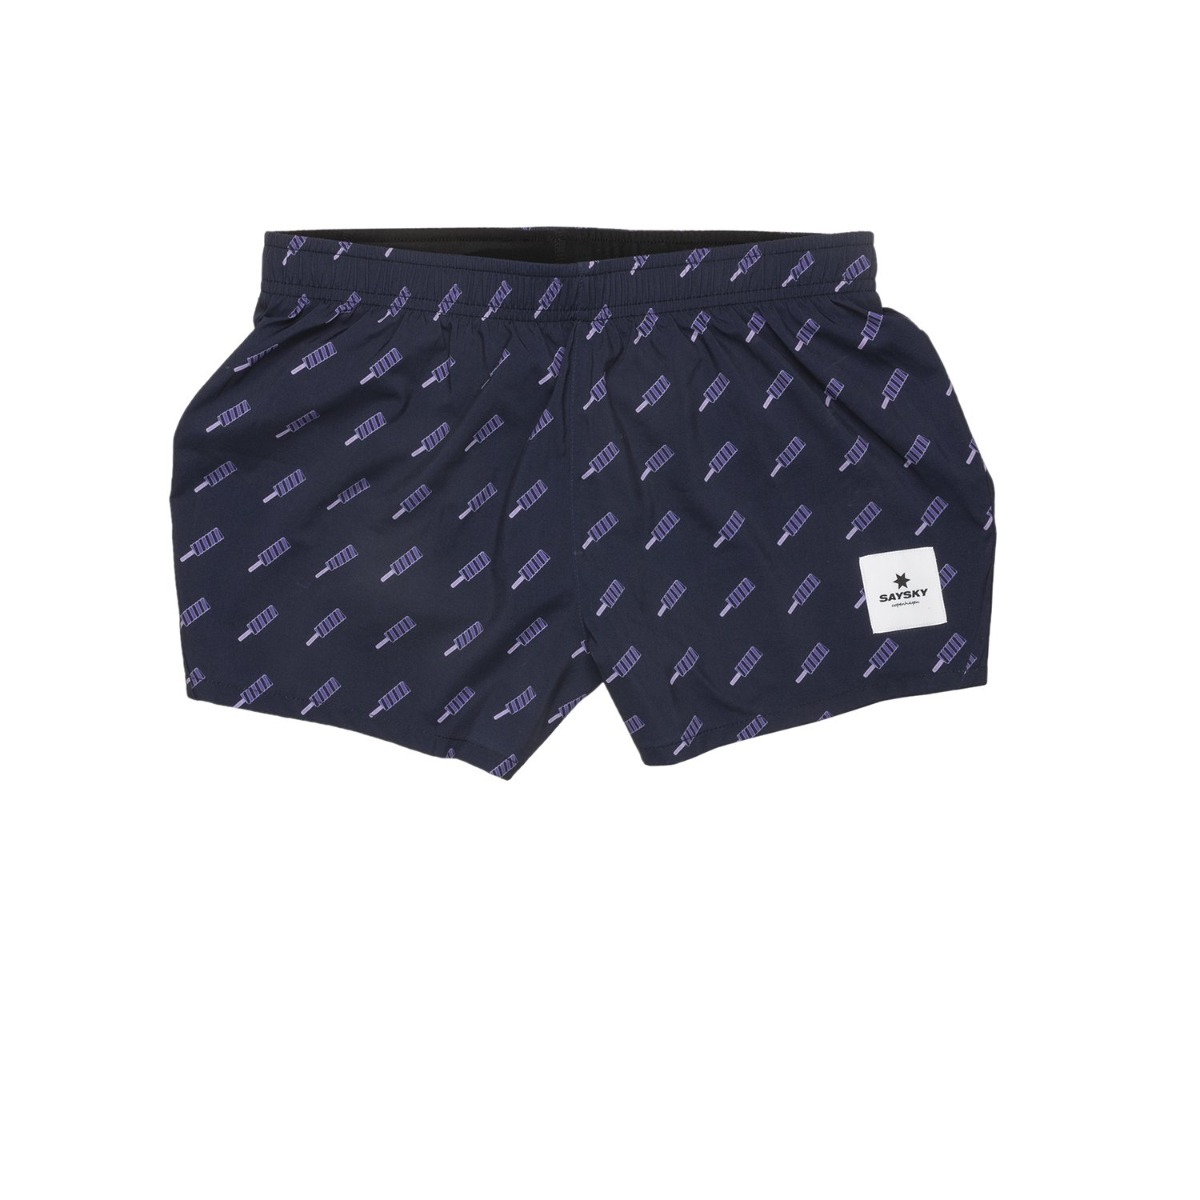 SaySky Ice Pace Shorts dame